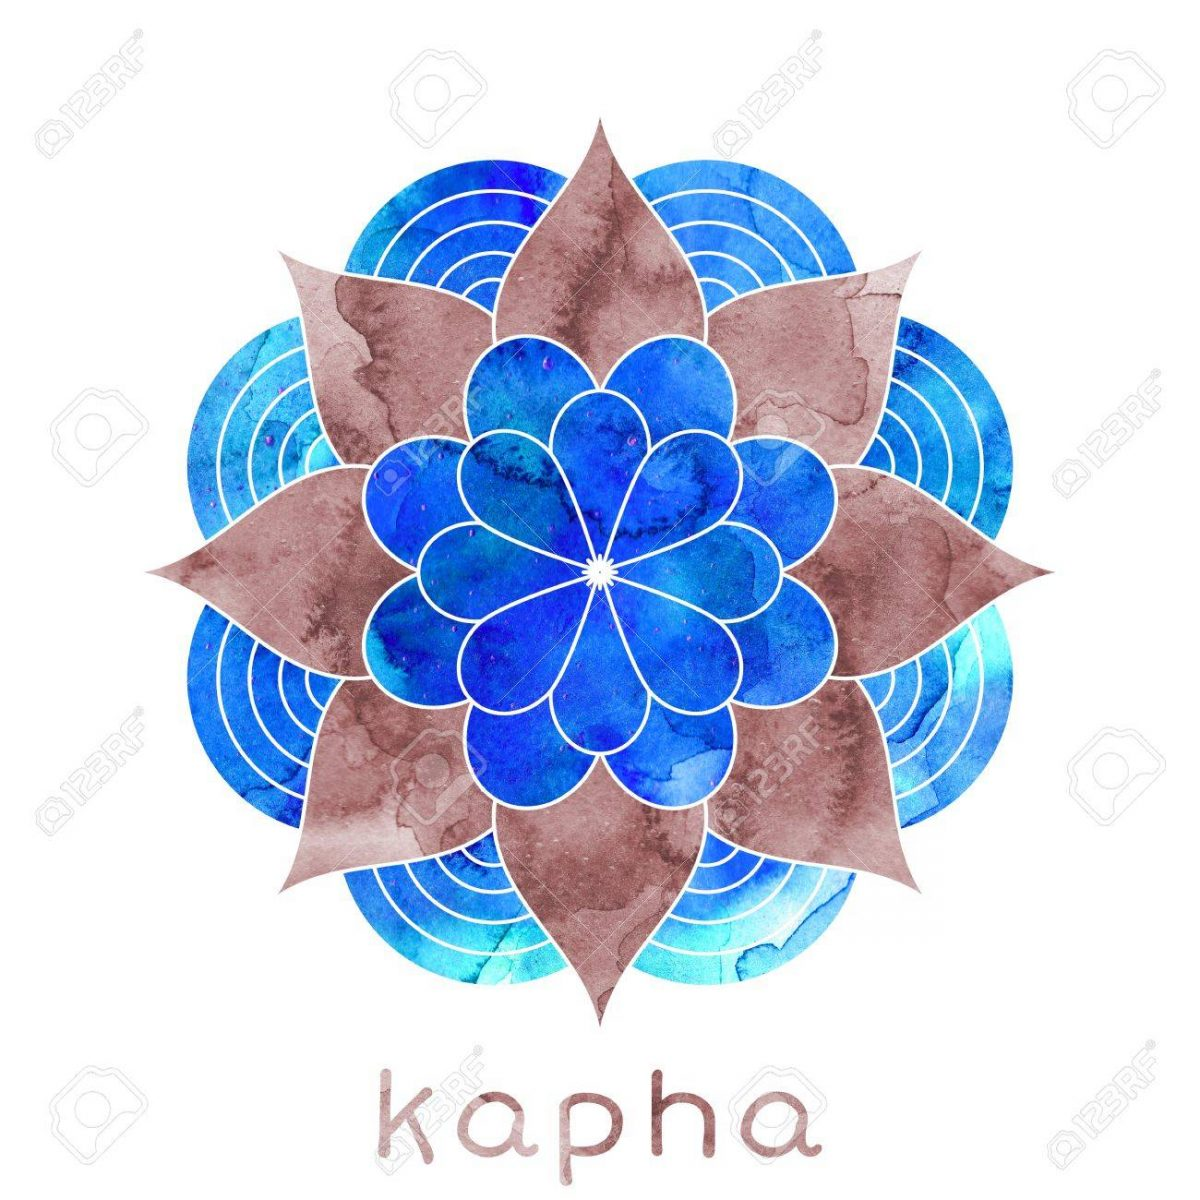 66215969-kapha-dosha-abstract-symbol-with-watercolor-texture-ayurvedic-body-type-1200x1200.jpg